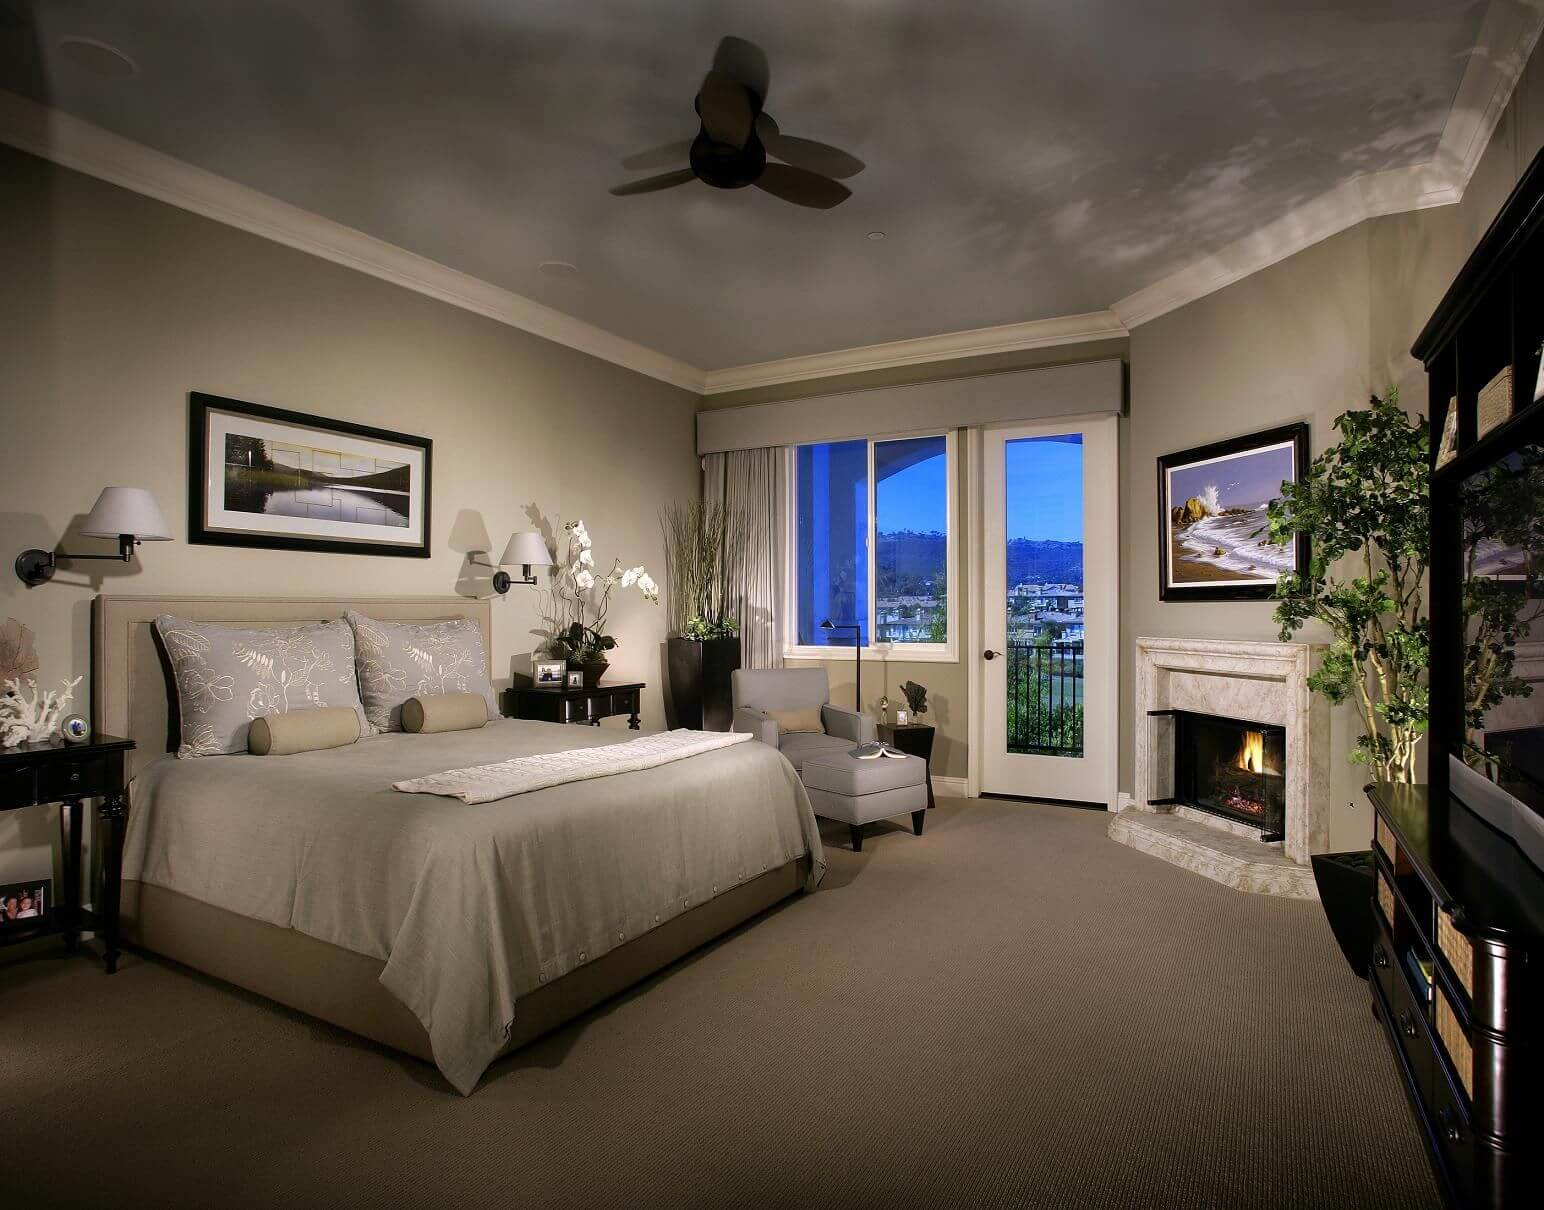 Bedroom sitting area with fireplace - Chaise Lounge Facing Fireplace In Luxury Master Bedroom